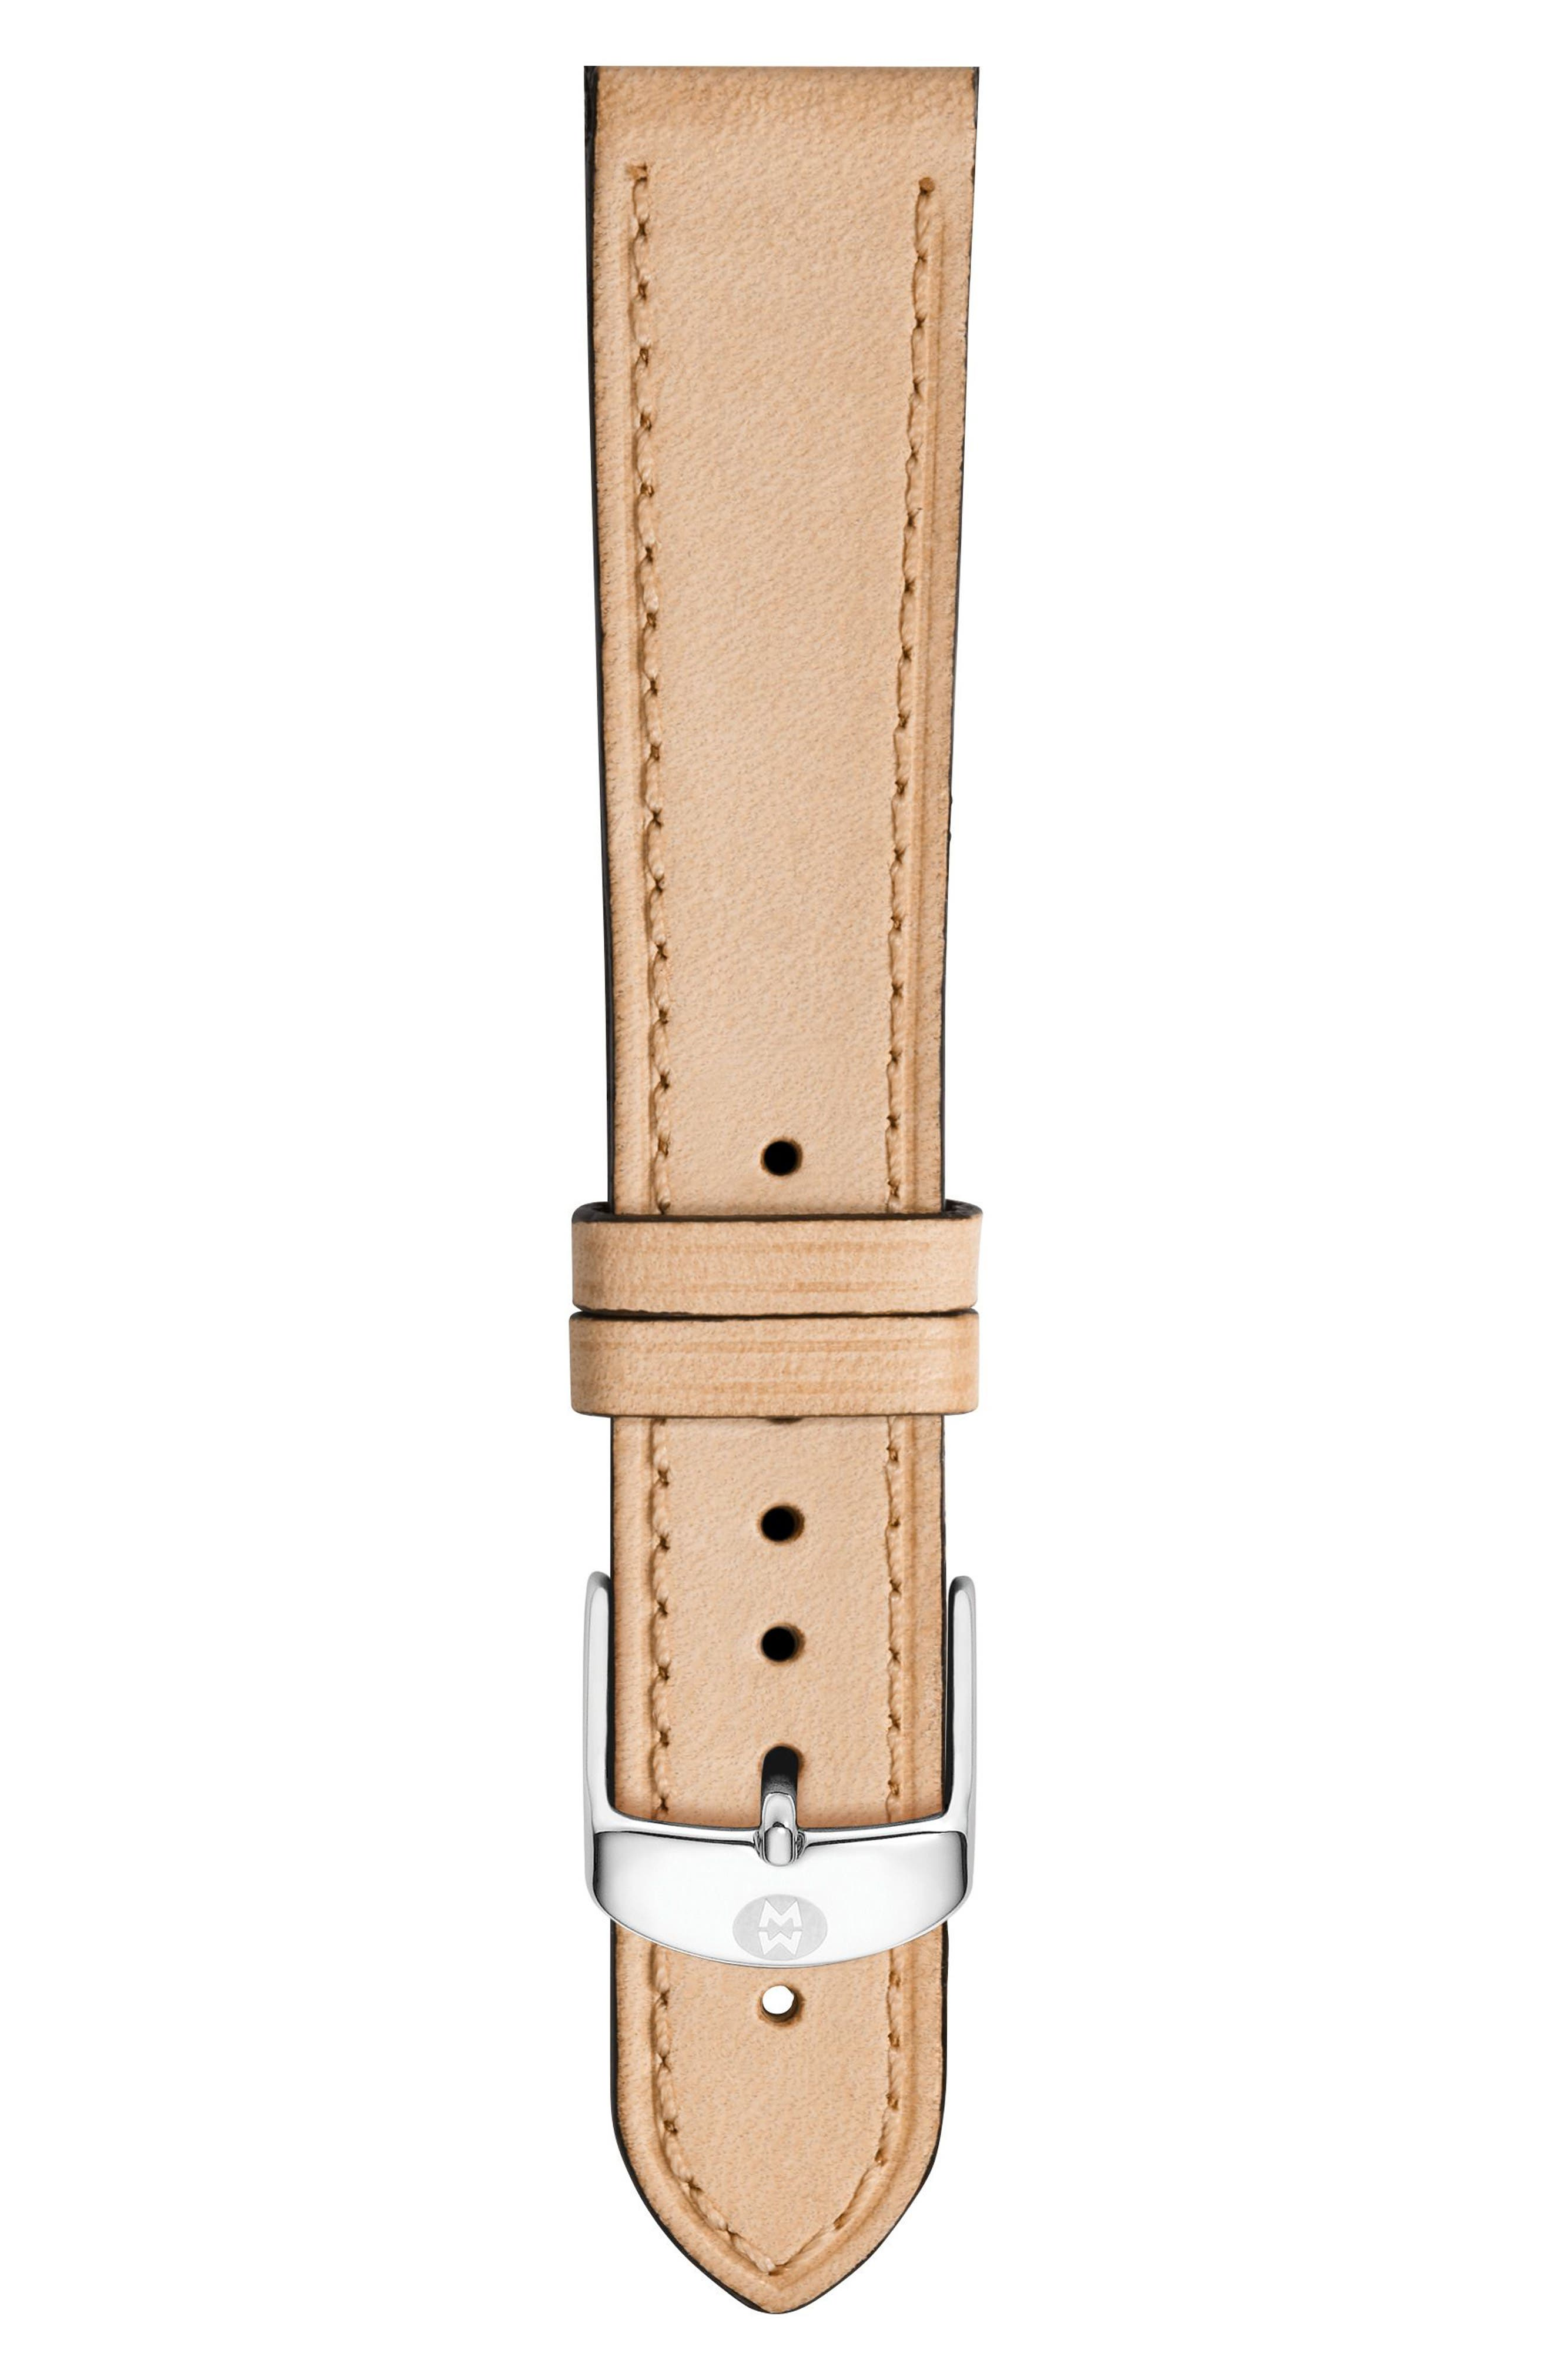 16mm Calfskin Leather Watch Strap,                         Main,                         color, TAN